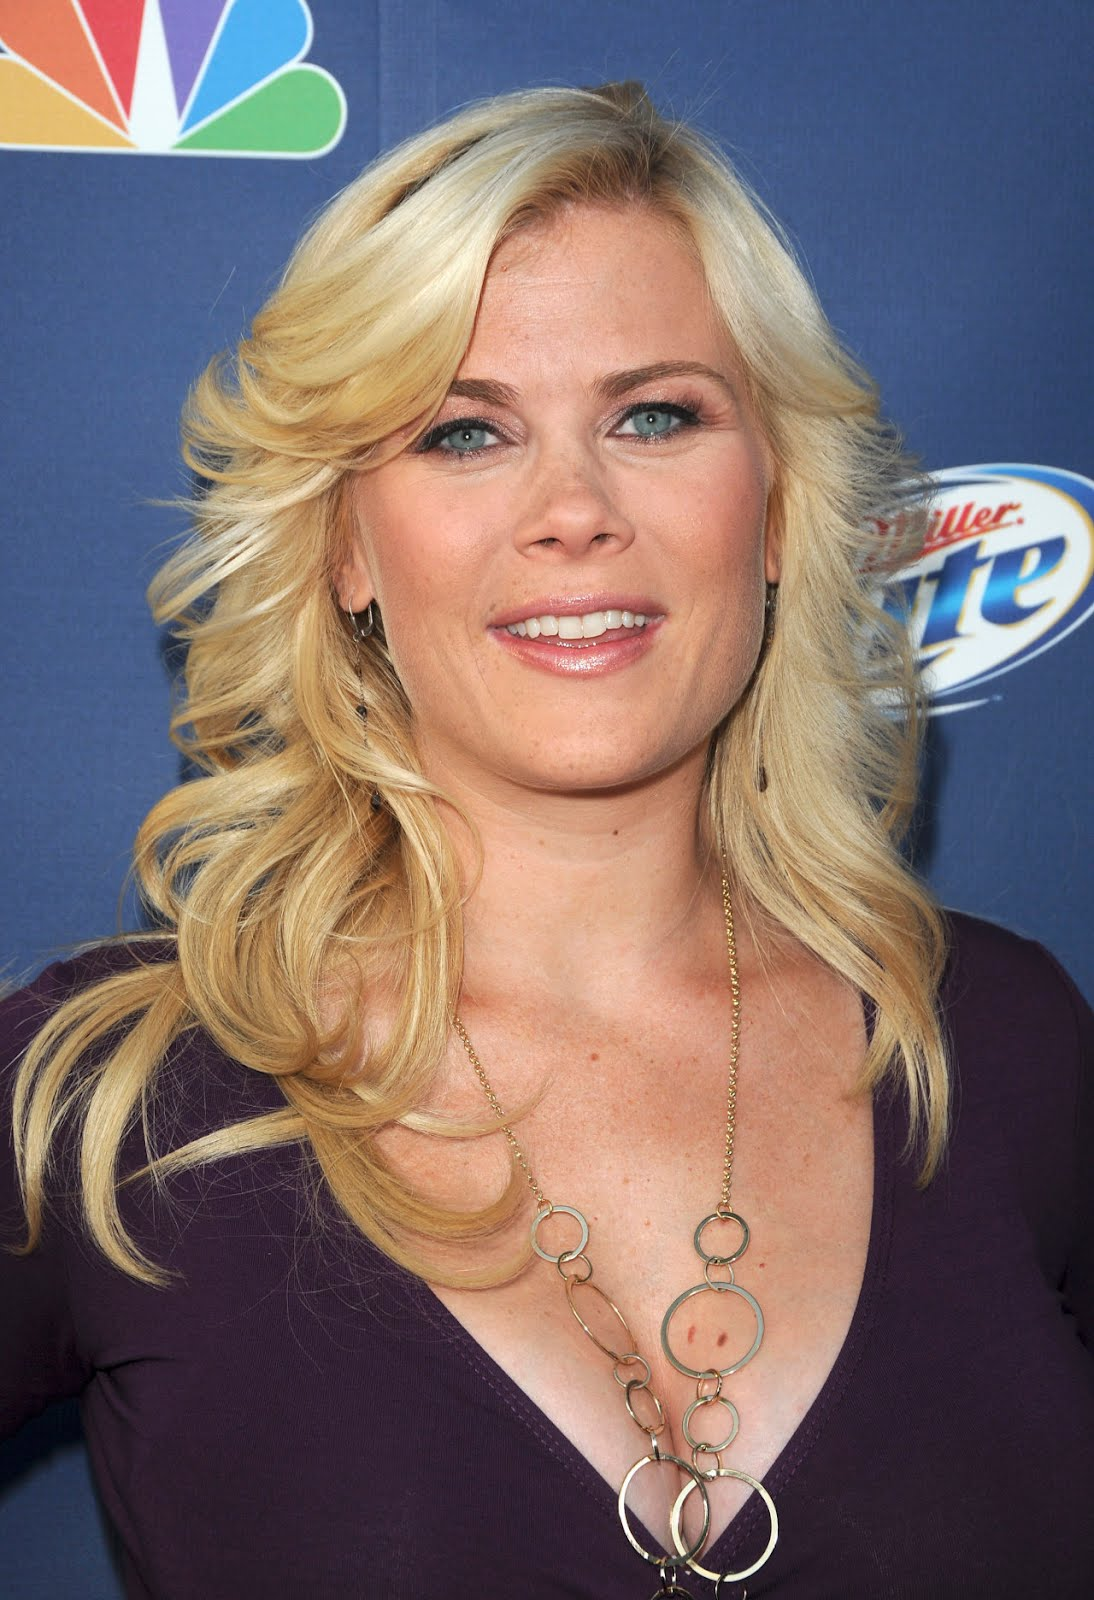 The Diva of Days of Our Lives: Alison Sweeney to star in